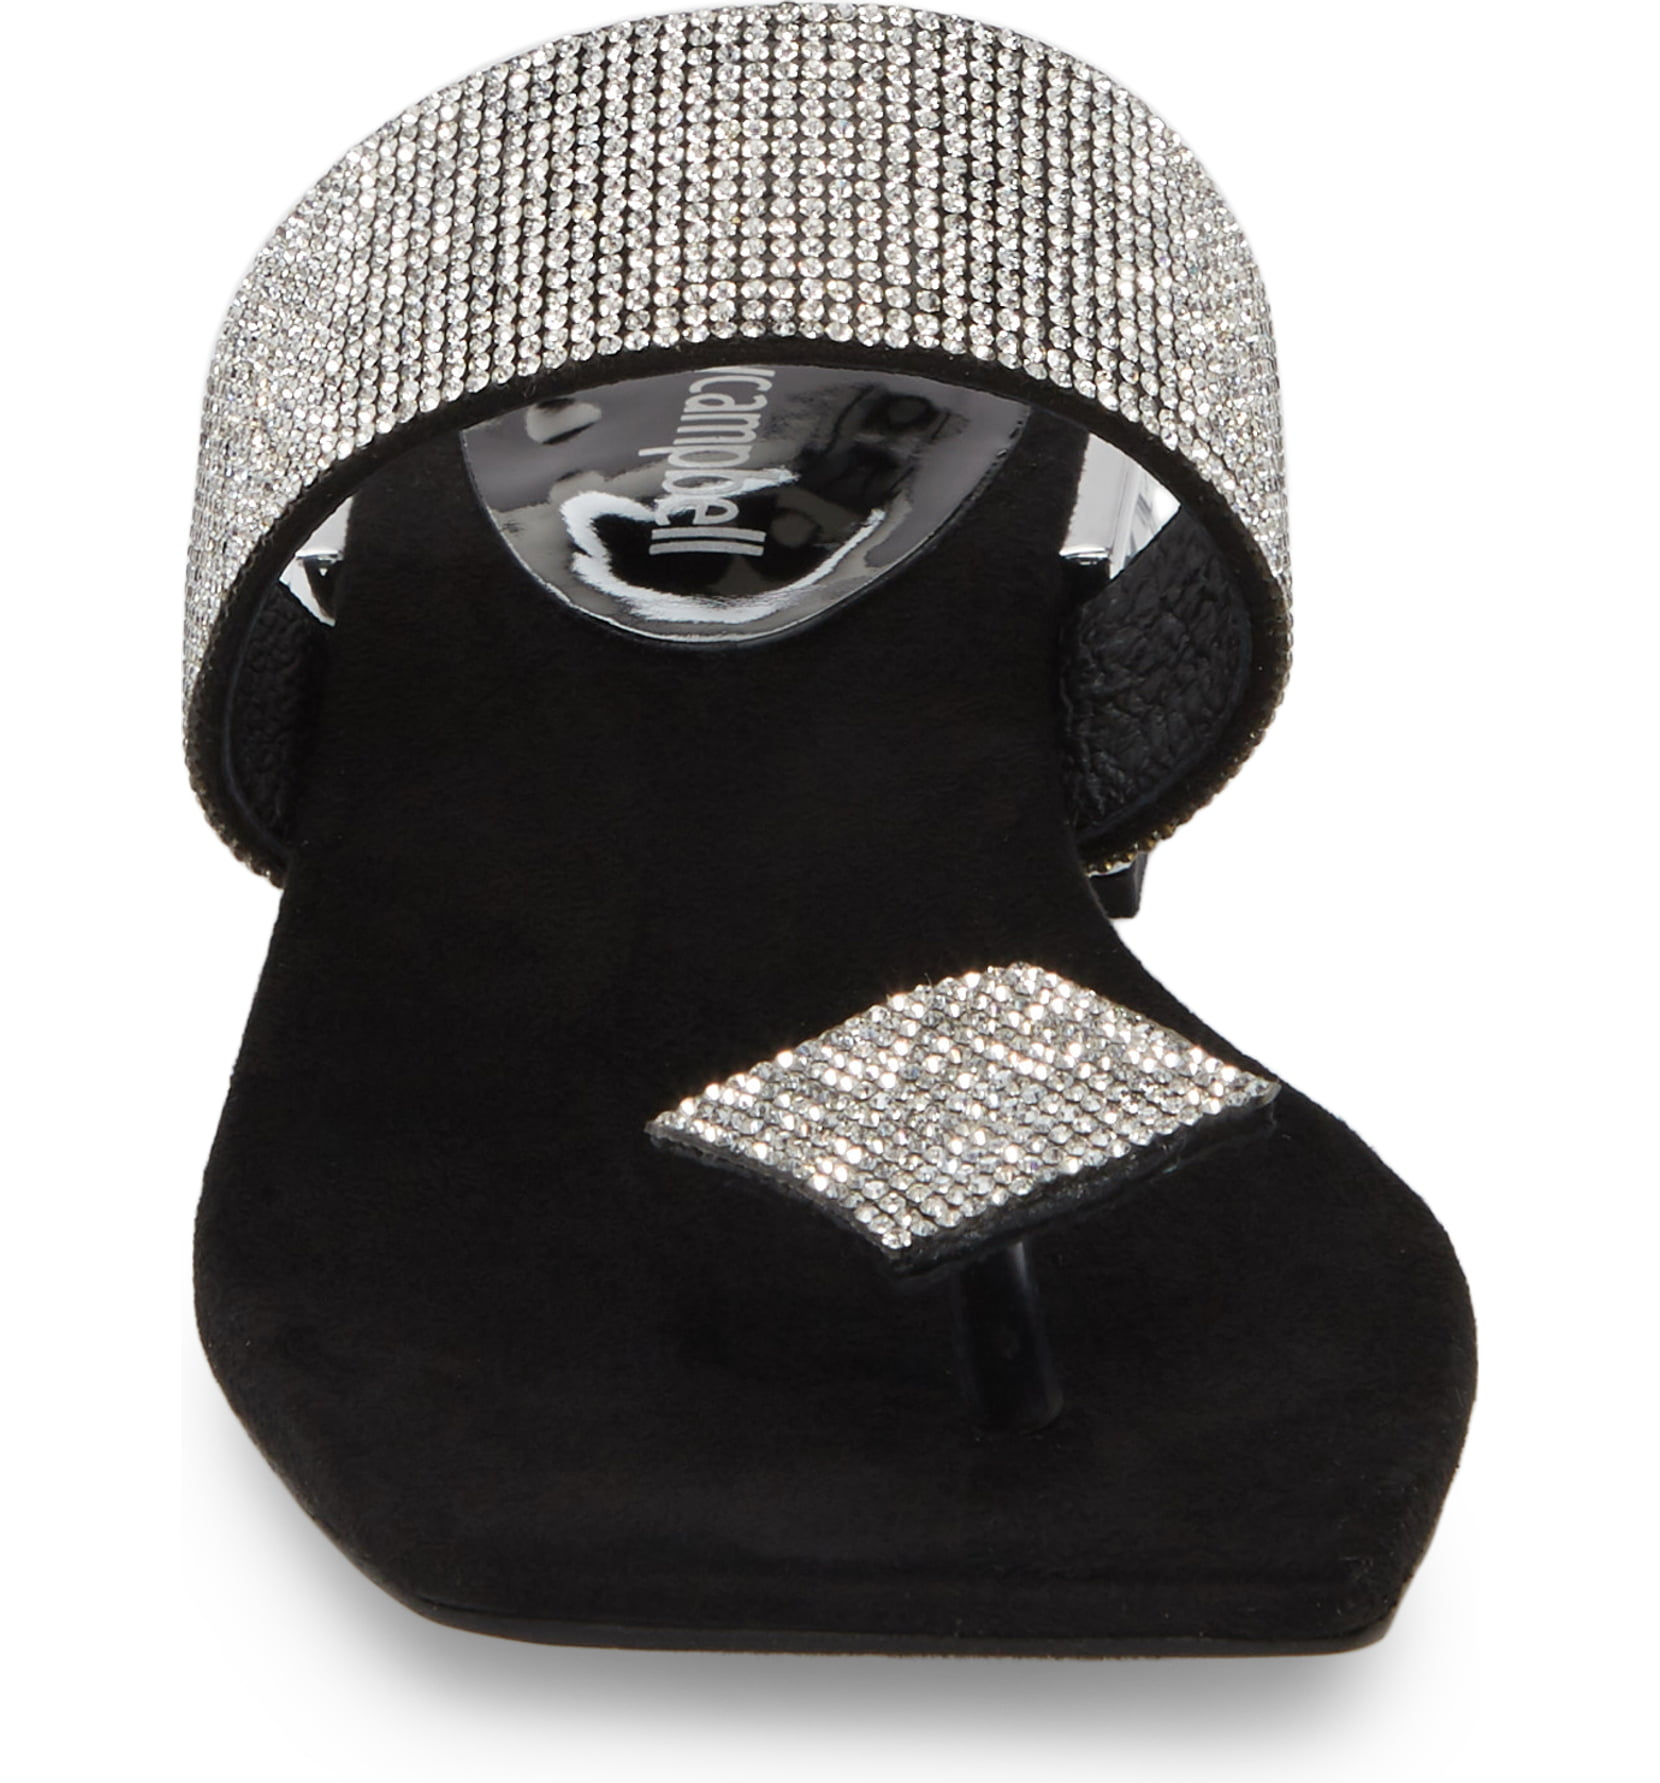 Jeffery-Campbell-ALISE-SH-Black-Silver-Embellished-Sandal-Jeweled-Square-Heel thumbnail 39